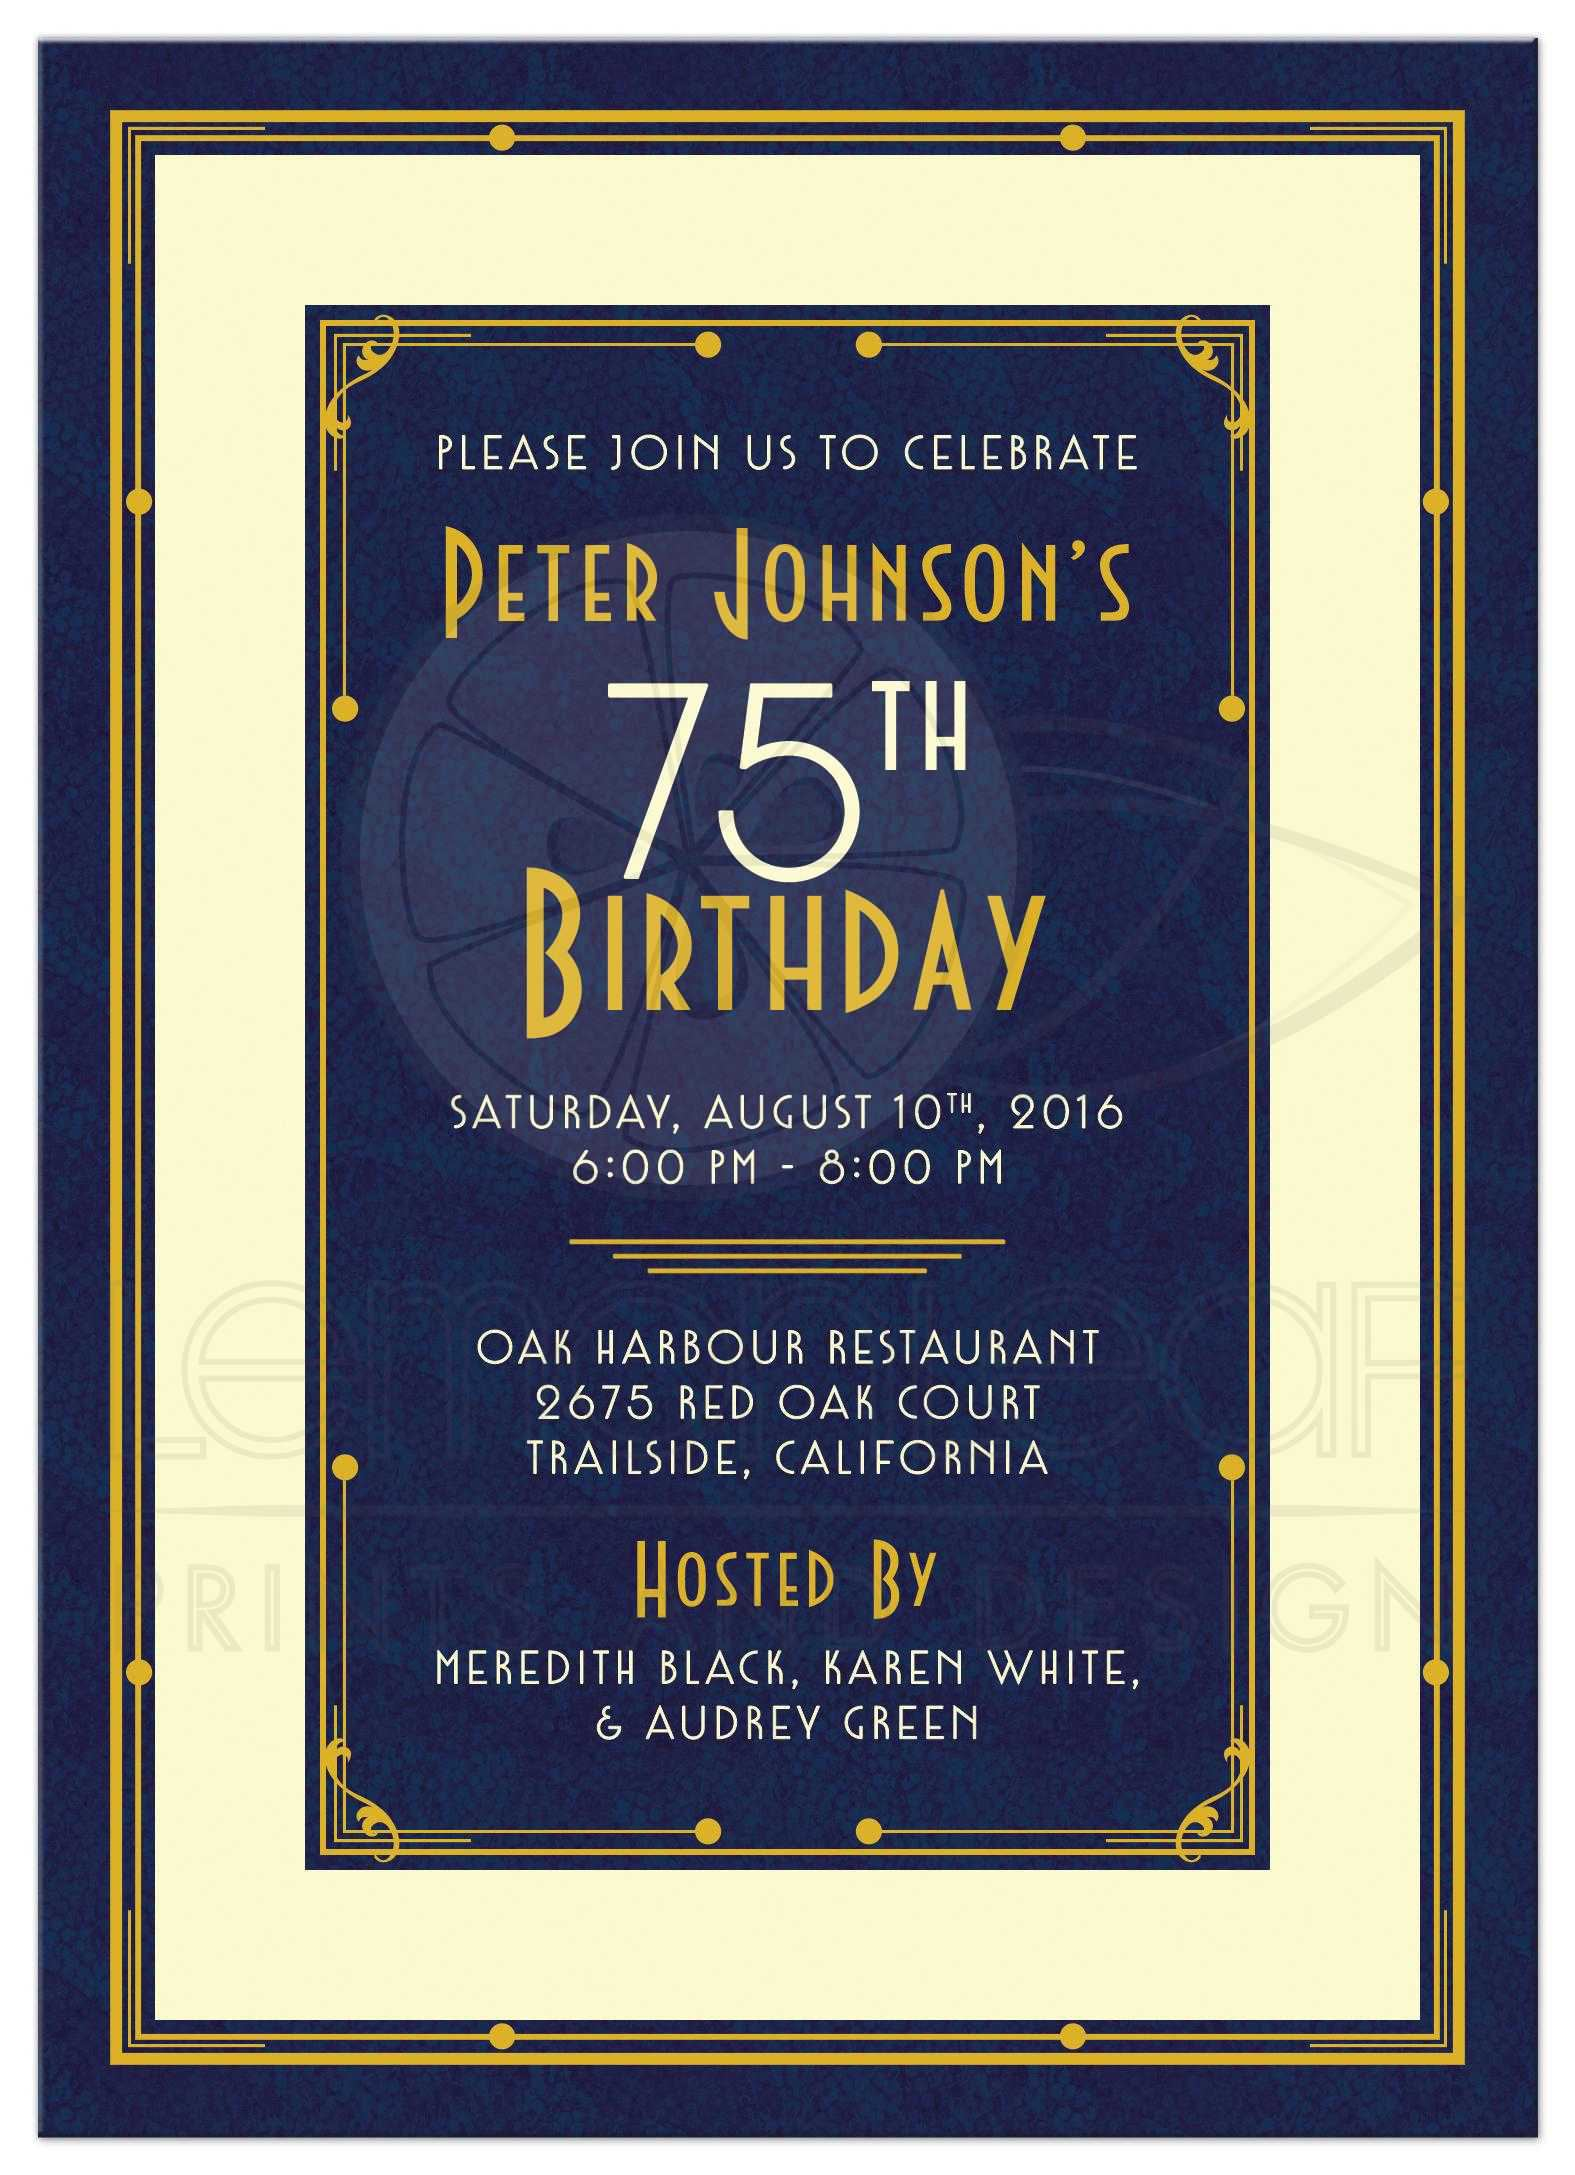 th birthday invitations Unique Ideas